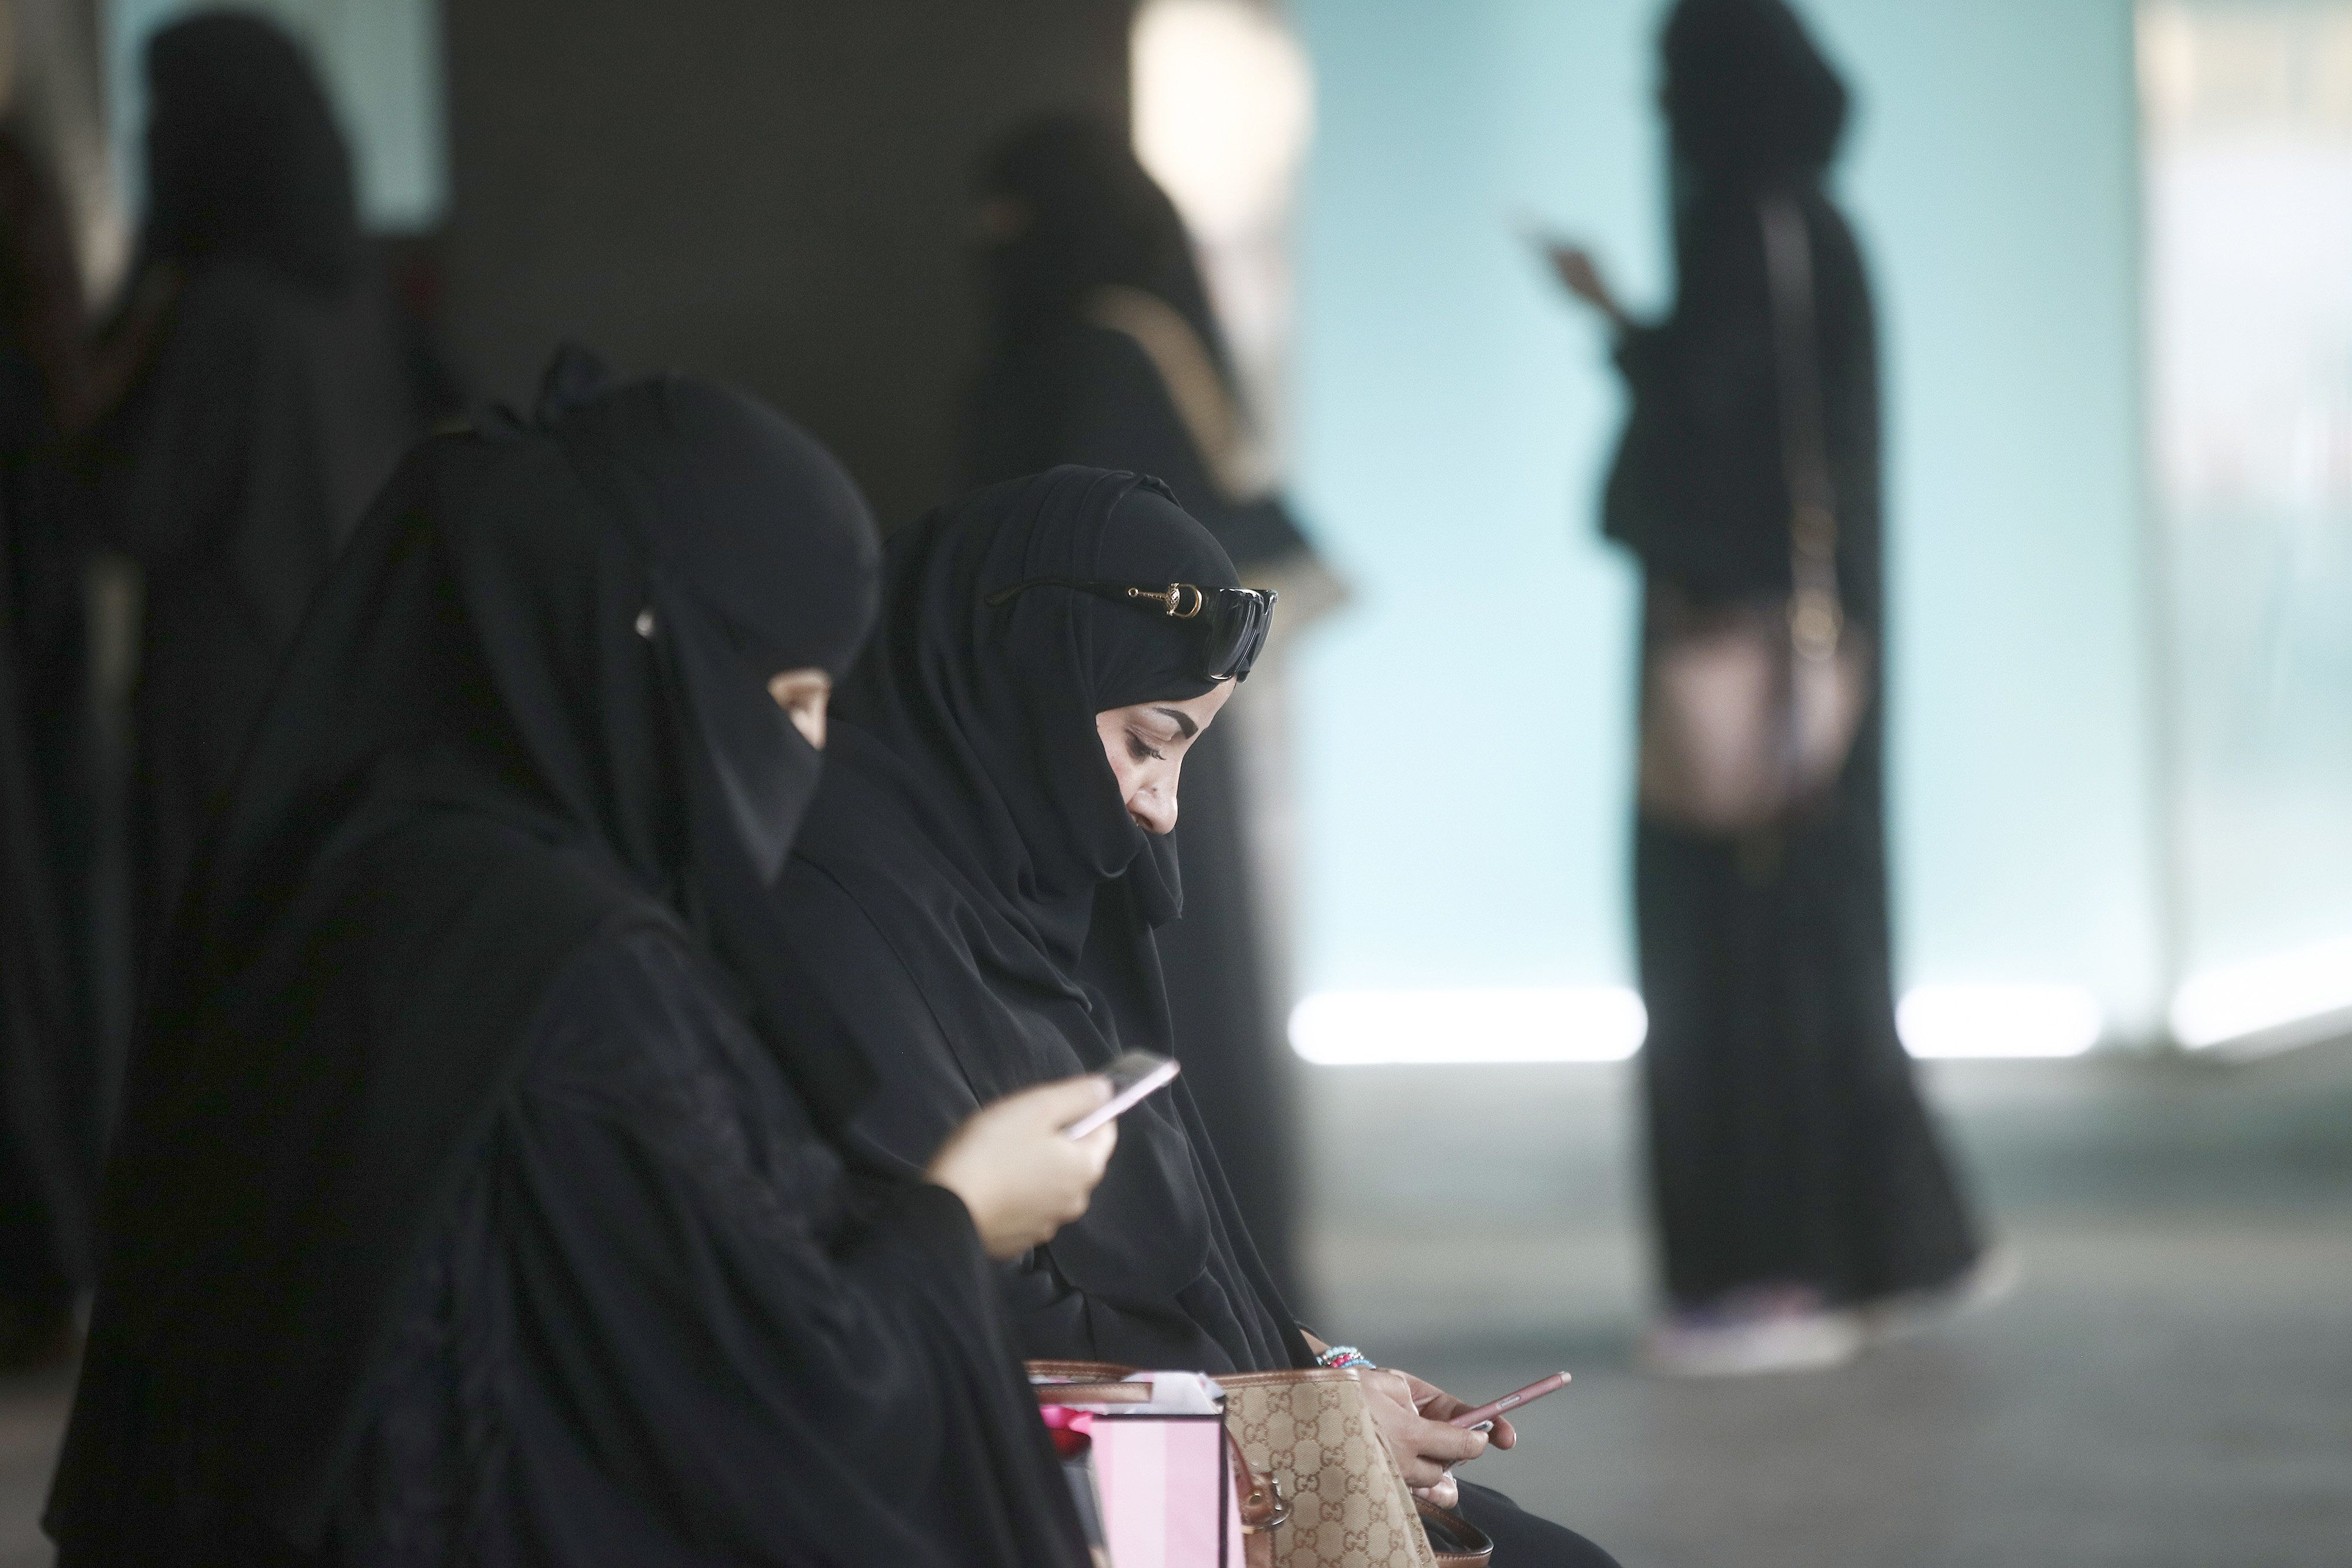 Female shoppers wearing traditional Saudi Arabian dress check their smartphones whilst waiting for transport outside the Tiffany & Co. jewelery store at the Kingdom Centre shopping mall in Riyadh, Saudi Arabia, on Friday, Dec. 2, 2016. Saudi Arabia is working to reduce the Middle Easts biggest economys reliance on oil, which provides three-quarters of government revenue, as part of a plan for the biggest economic shakeup since the countrys founding. Photographer: Simon Dawson/Bloomberg via Getty Images